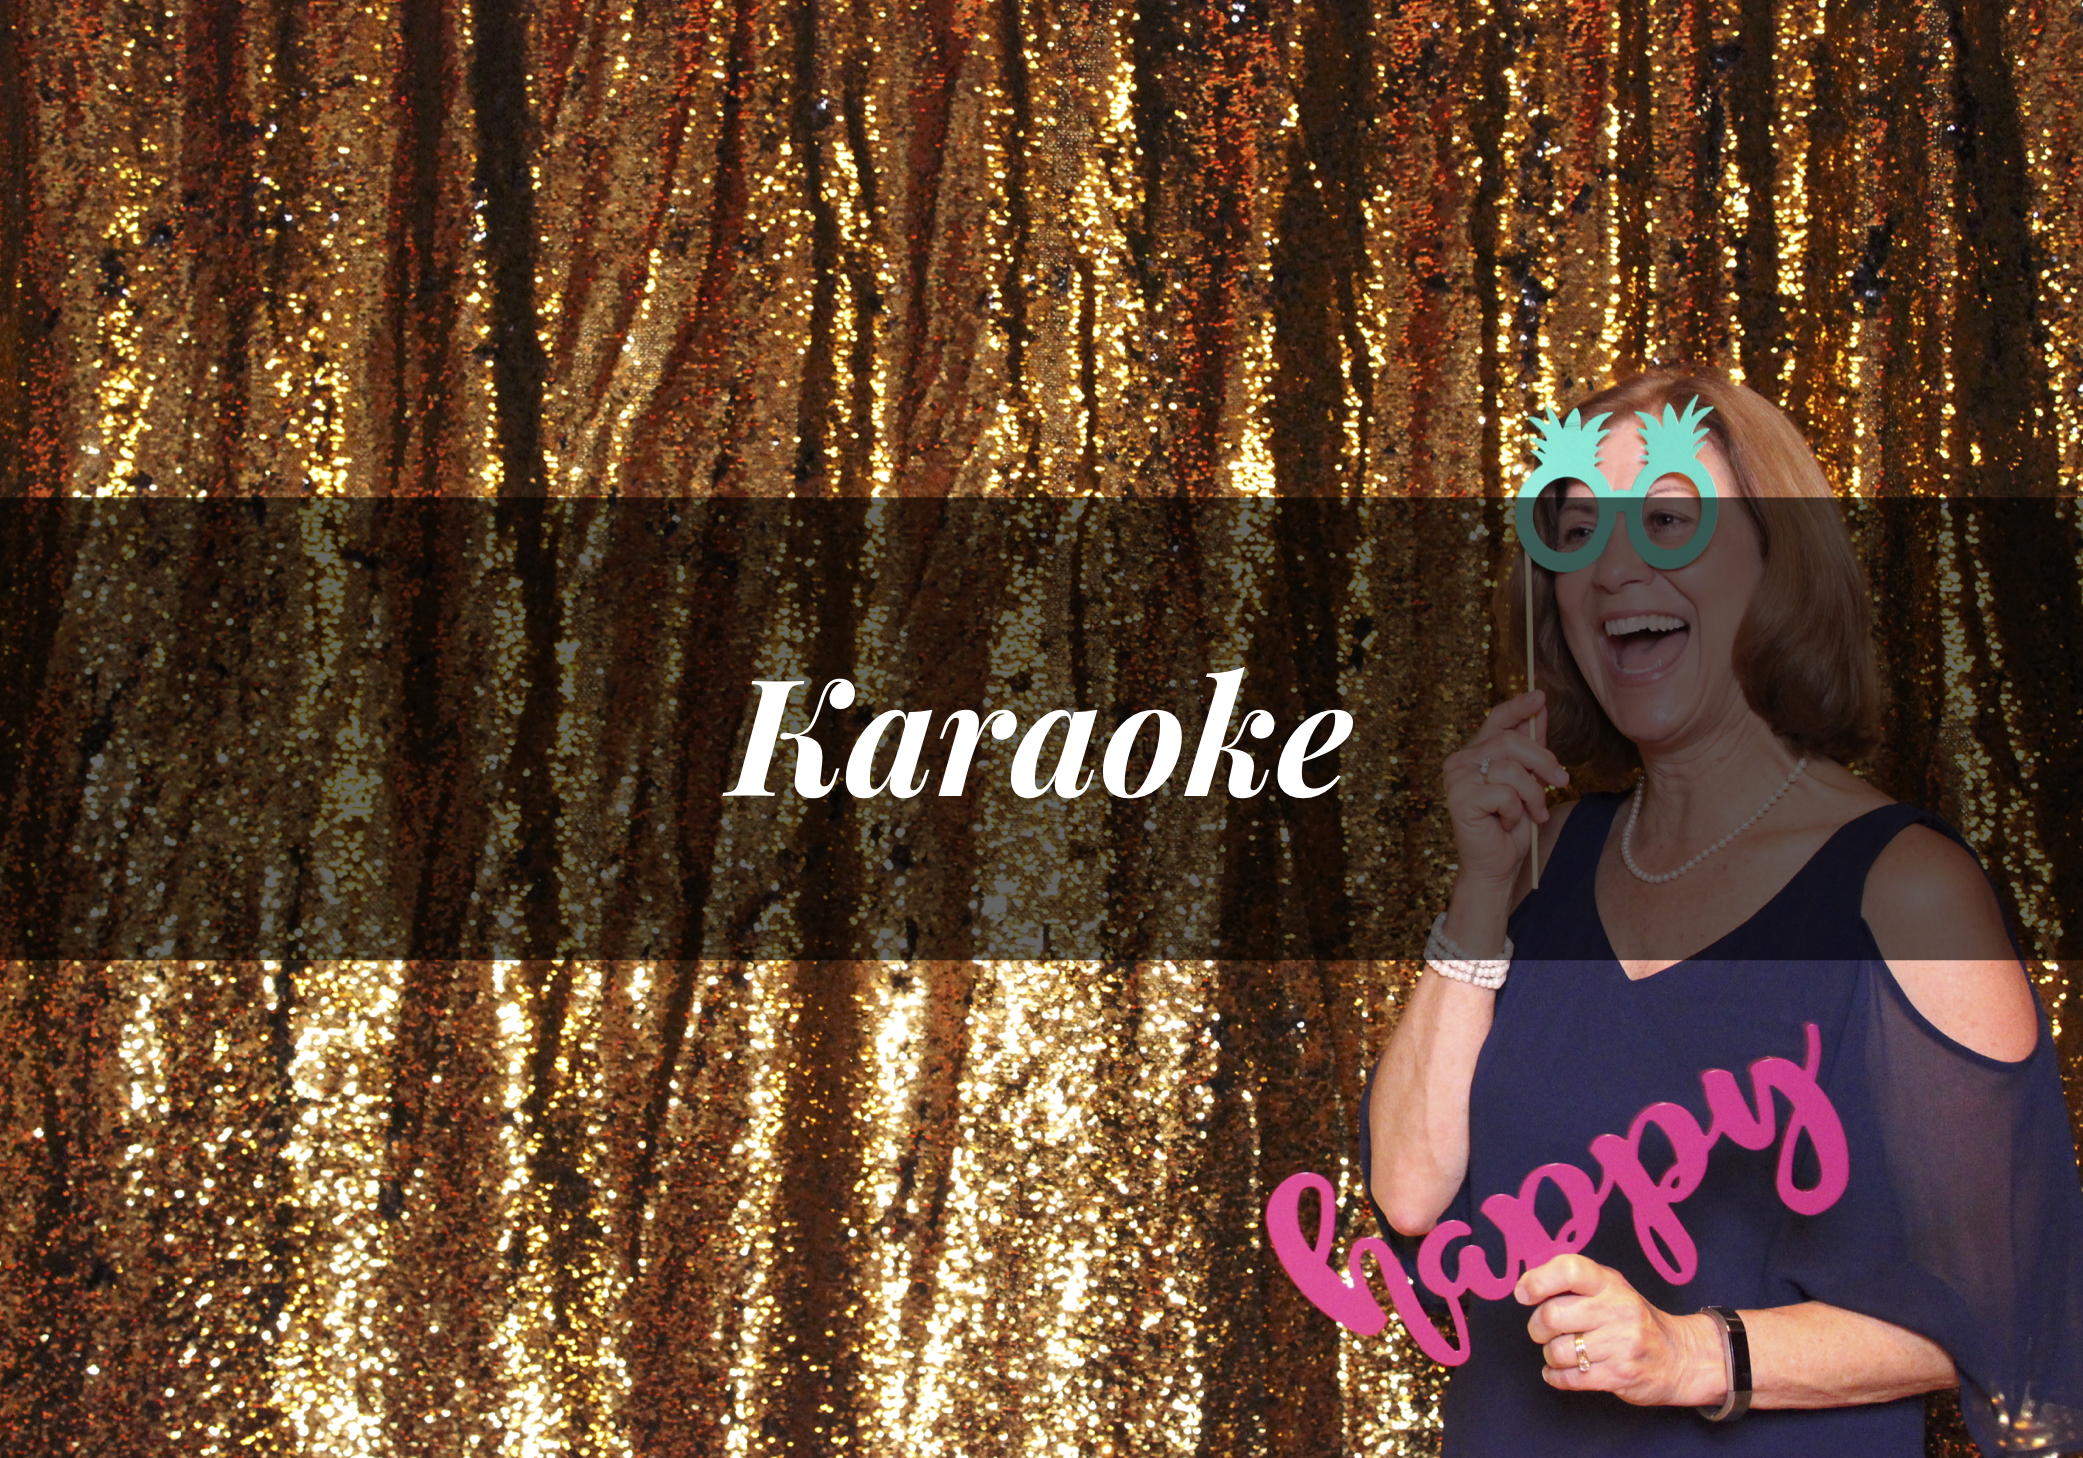 Karaoke Packages include a professional disc jockey and emcee, multiple microphones for singing with friends, and all necessary sound equipment.